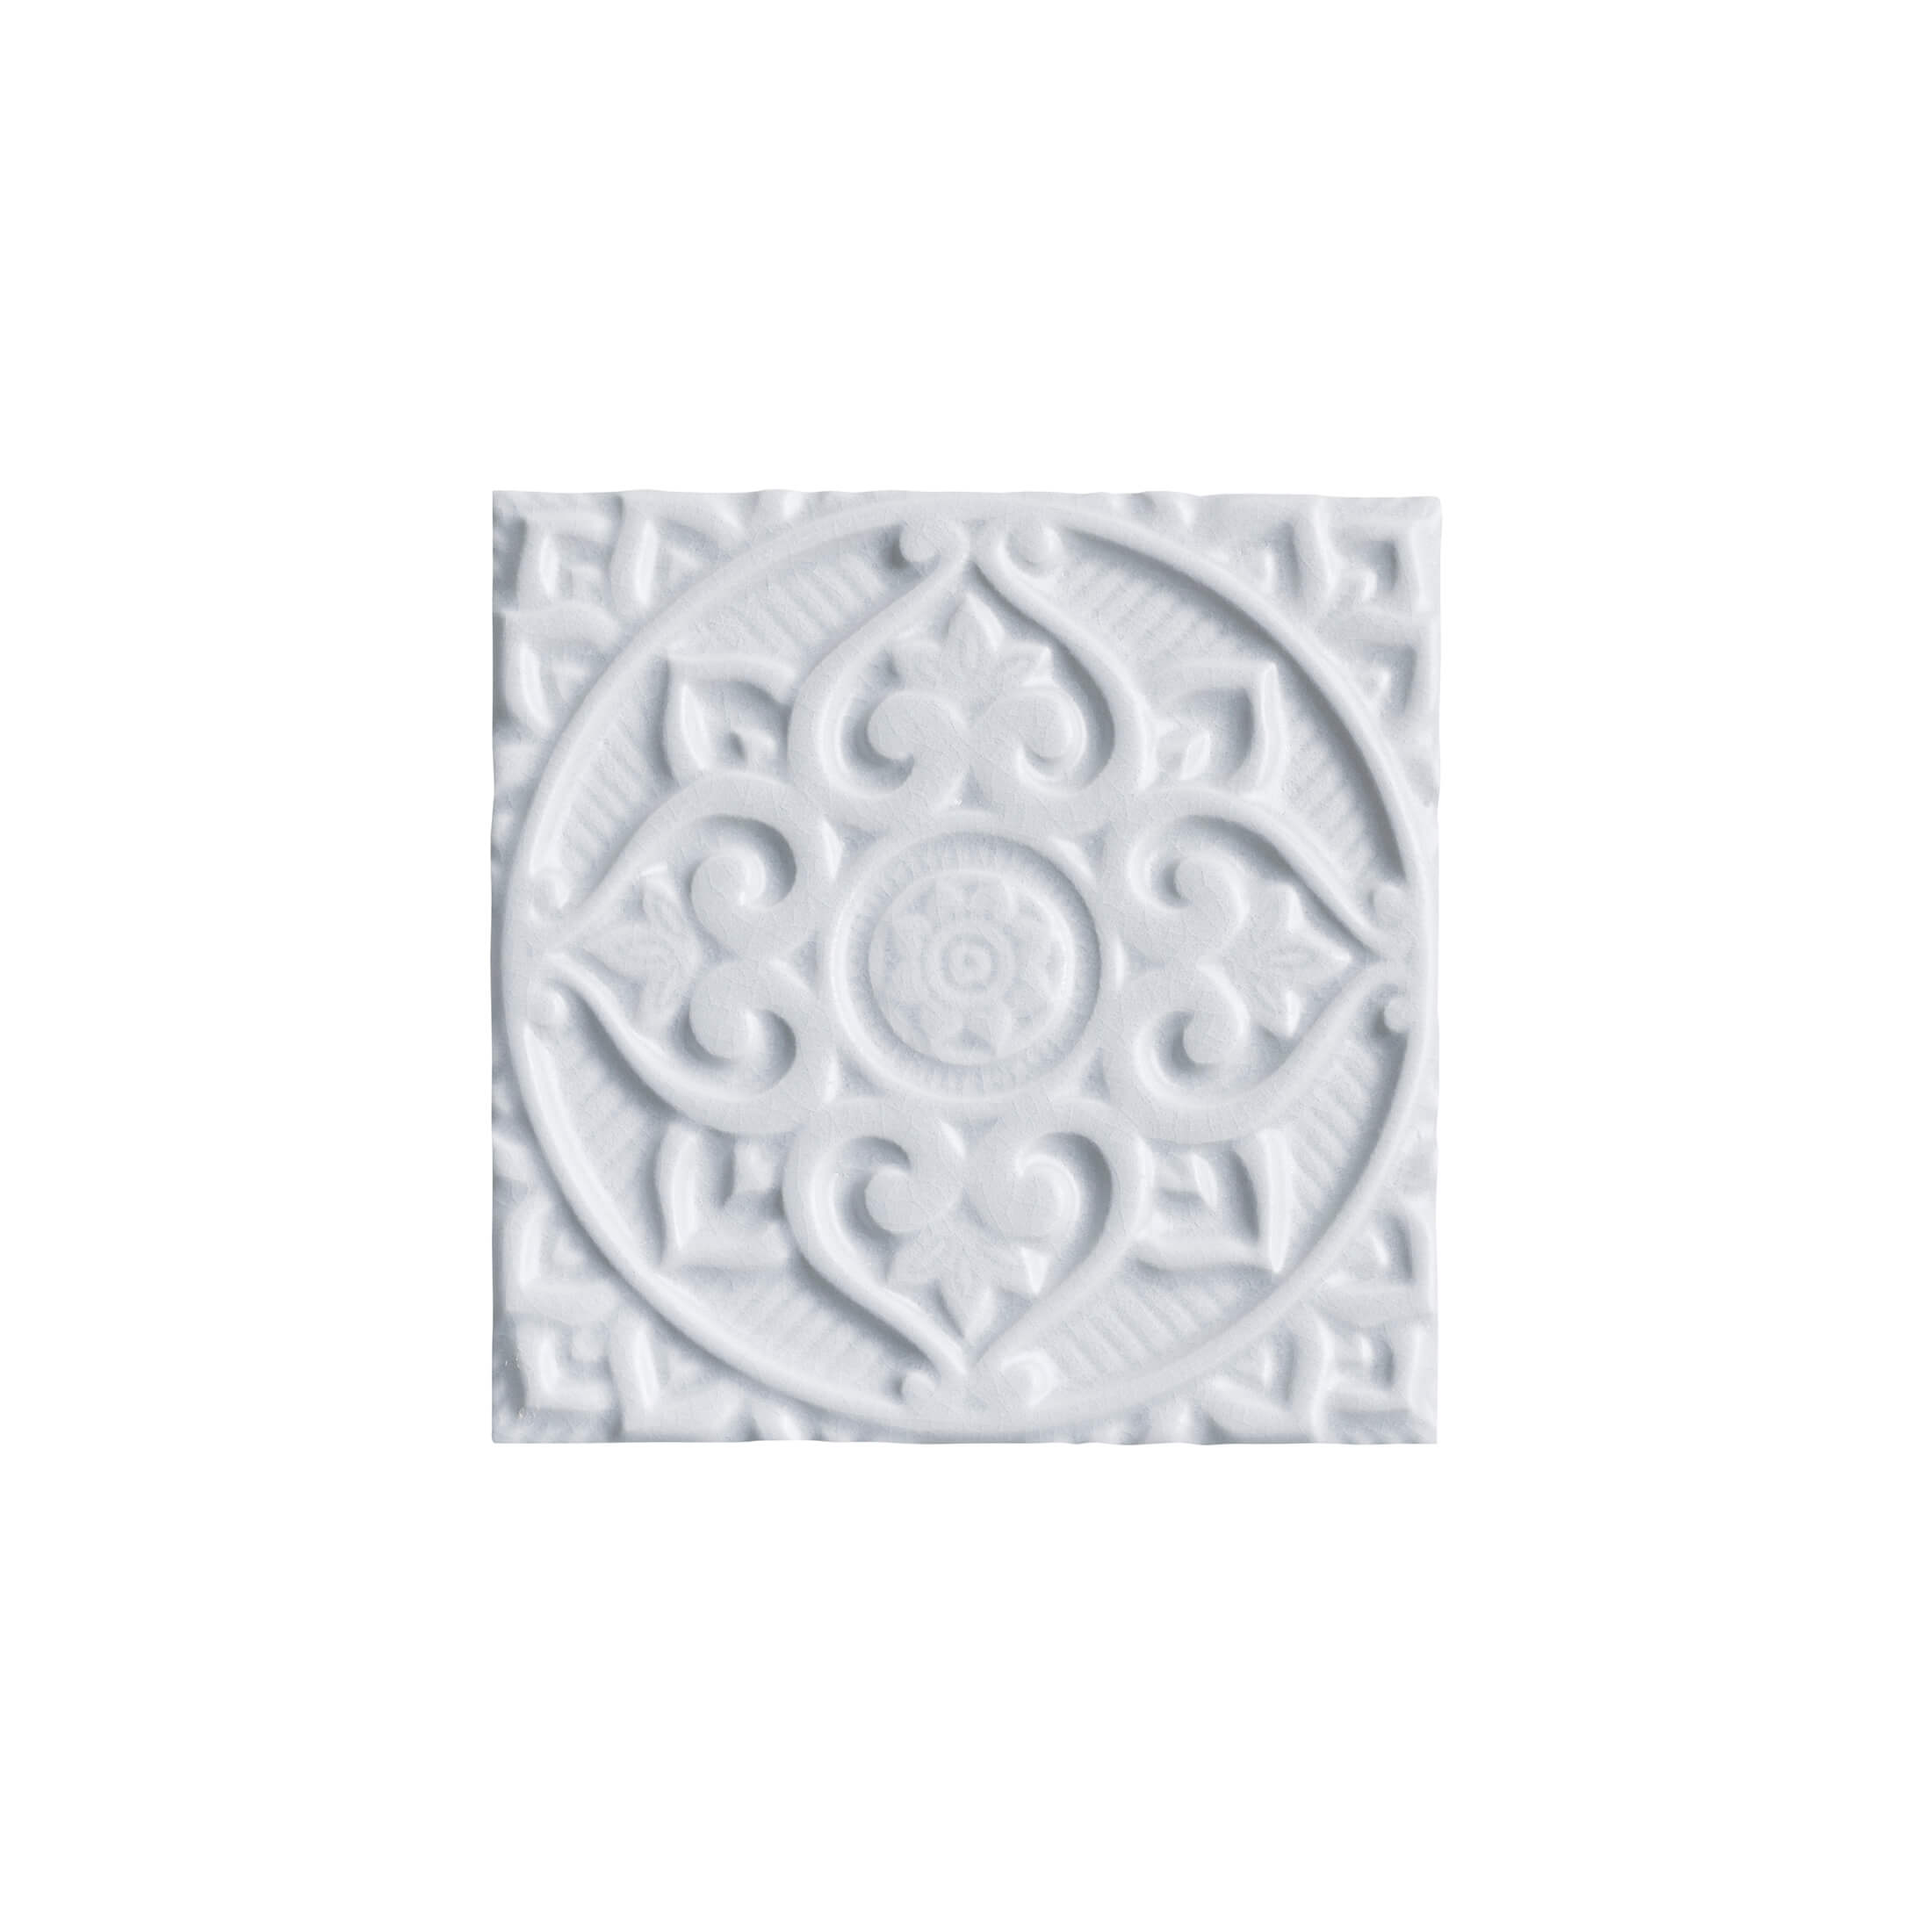 ADEH4012 - RELIEVE MANDALA ENERGY - 15 cm X 15 cm